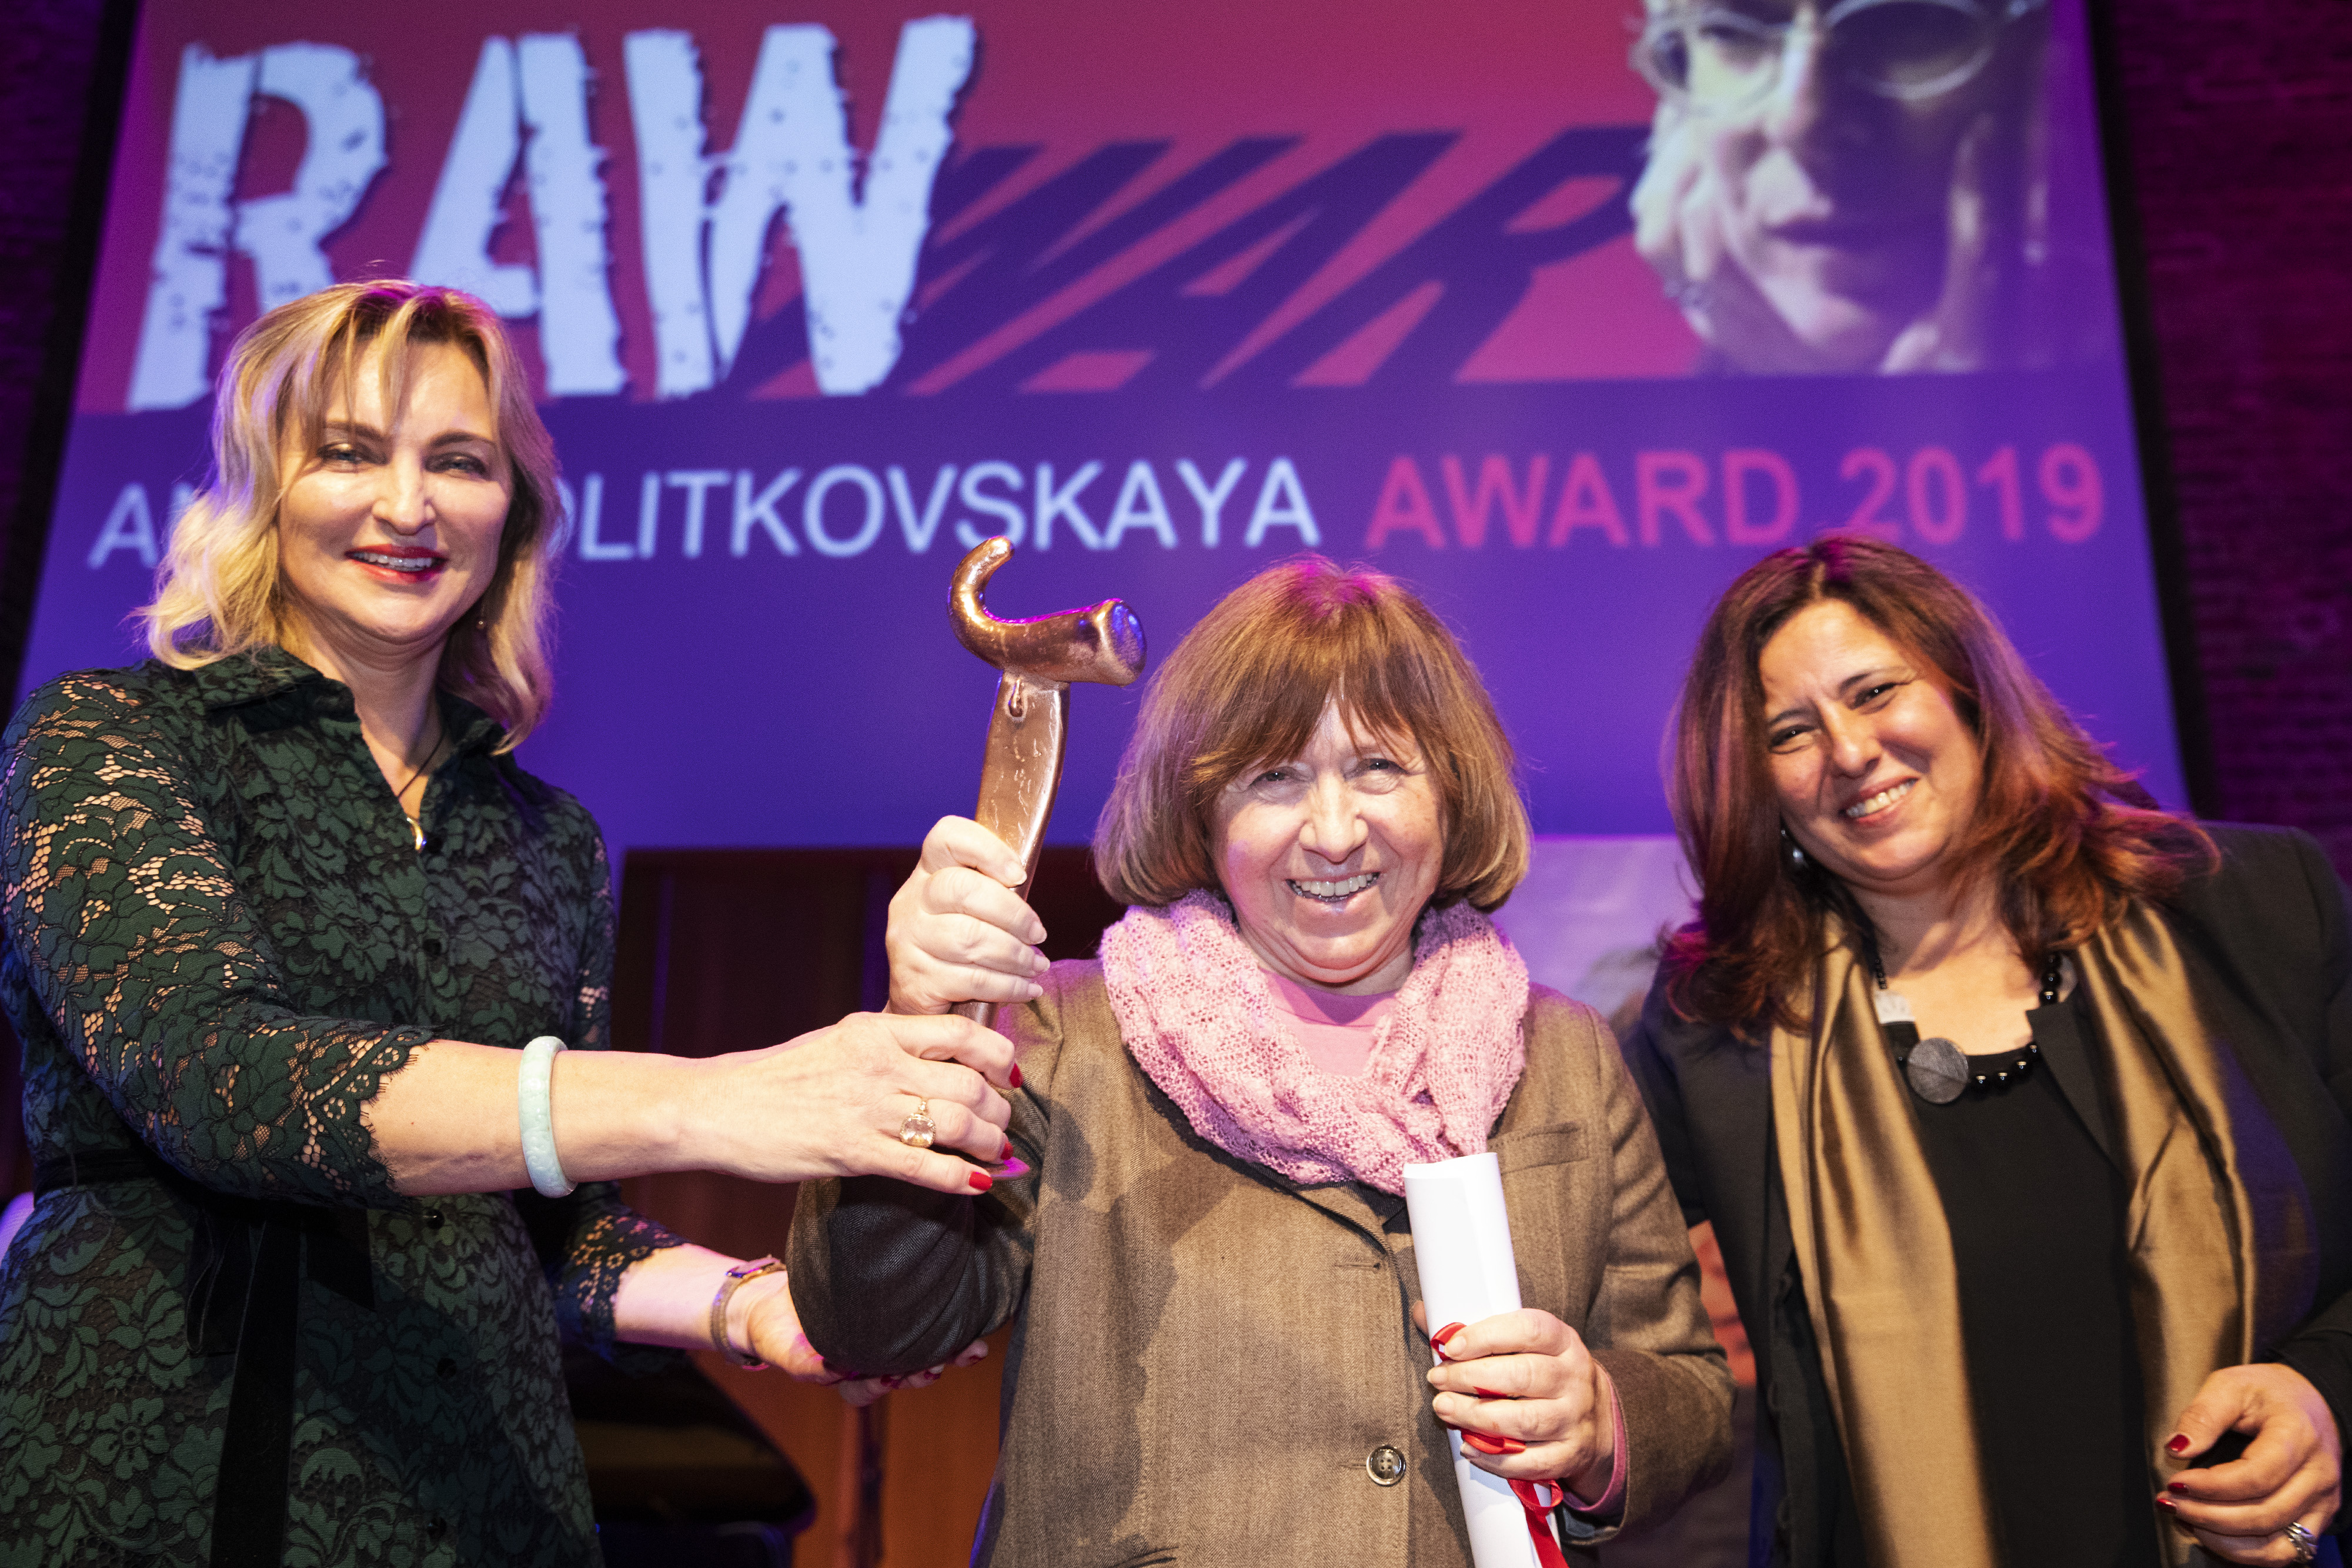 RAW in WAR honours Nobel Laureate in Literature, Belarusian writer, Svetlana Alexievich at Anna Politkovskaya Award ceremony in London